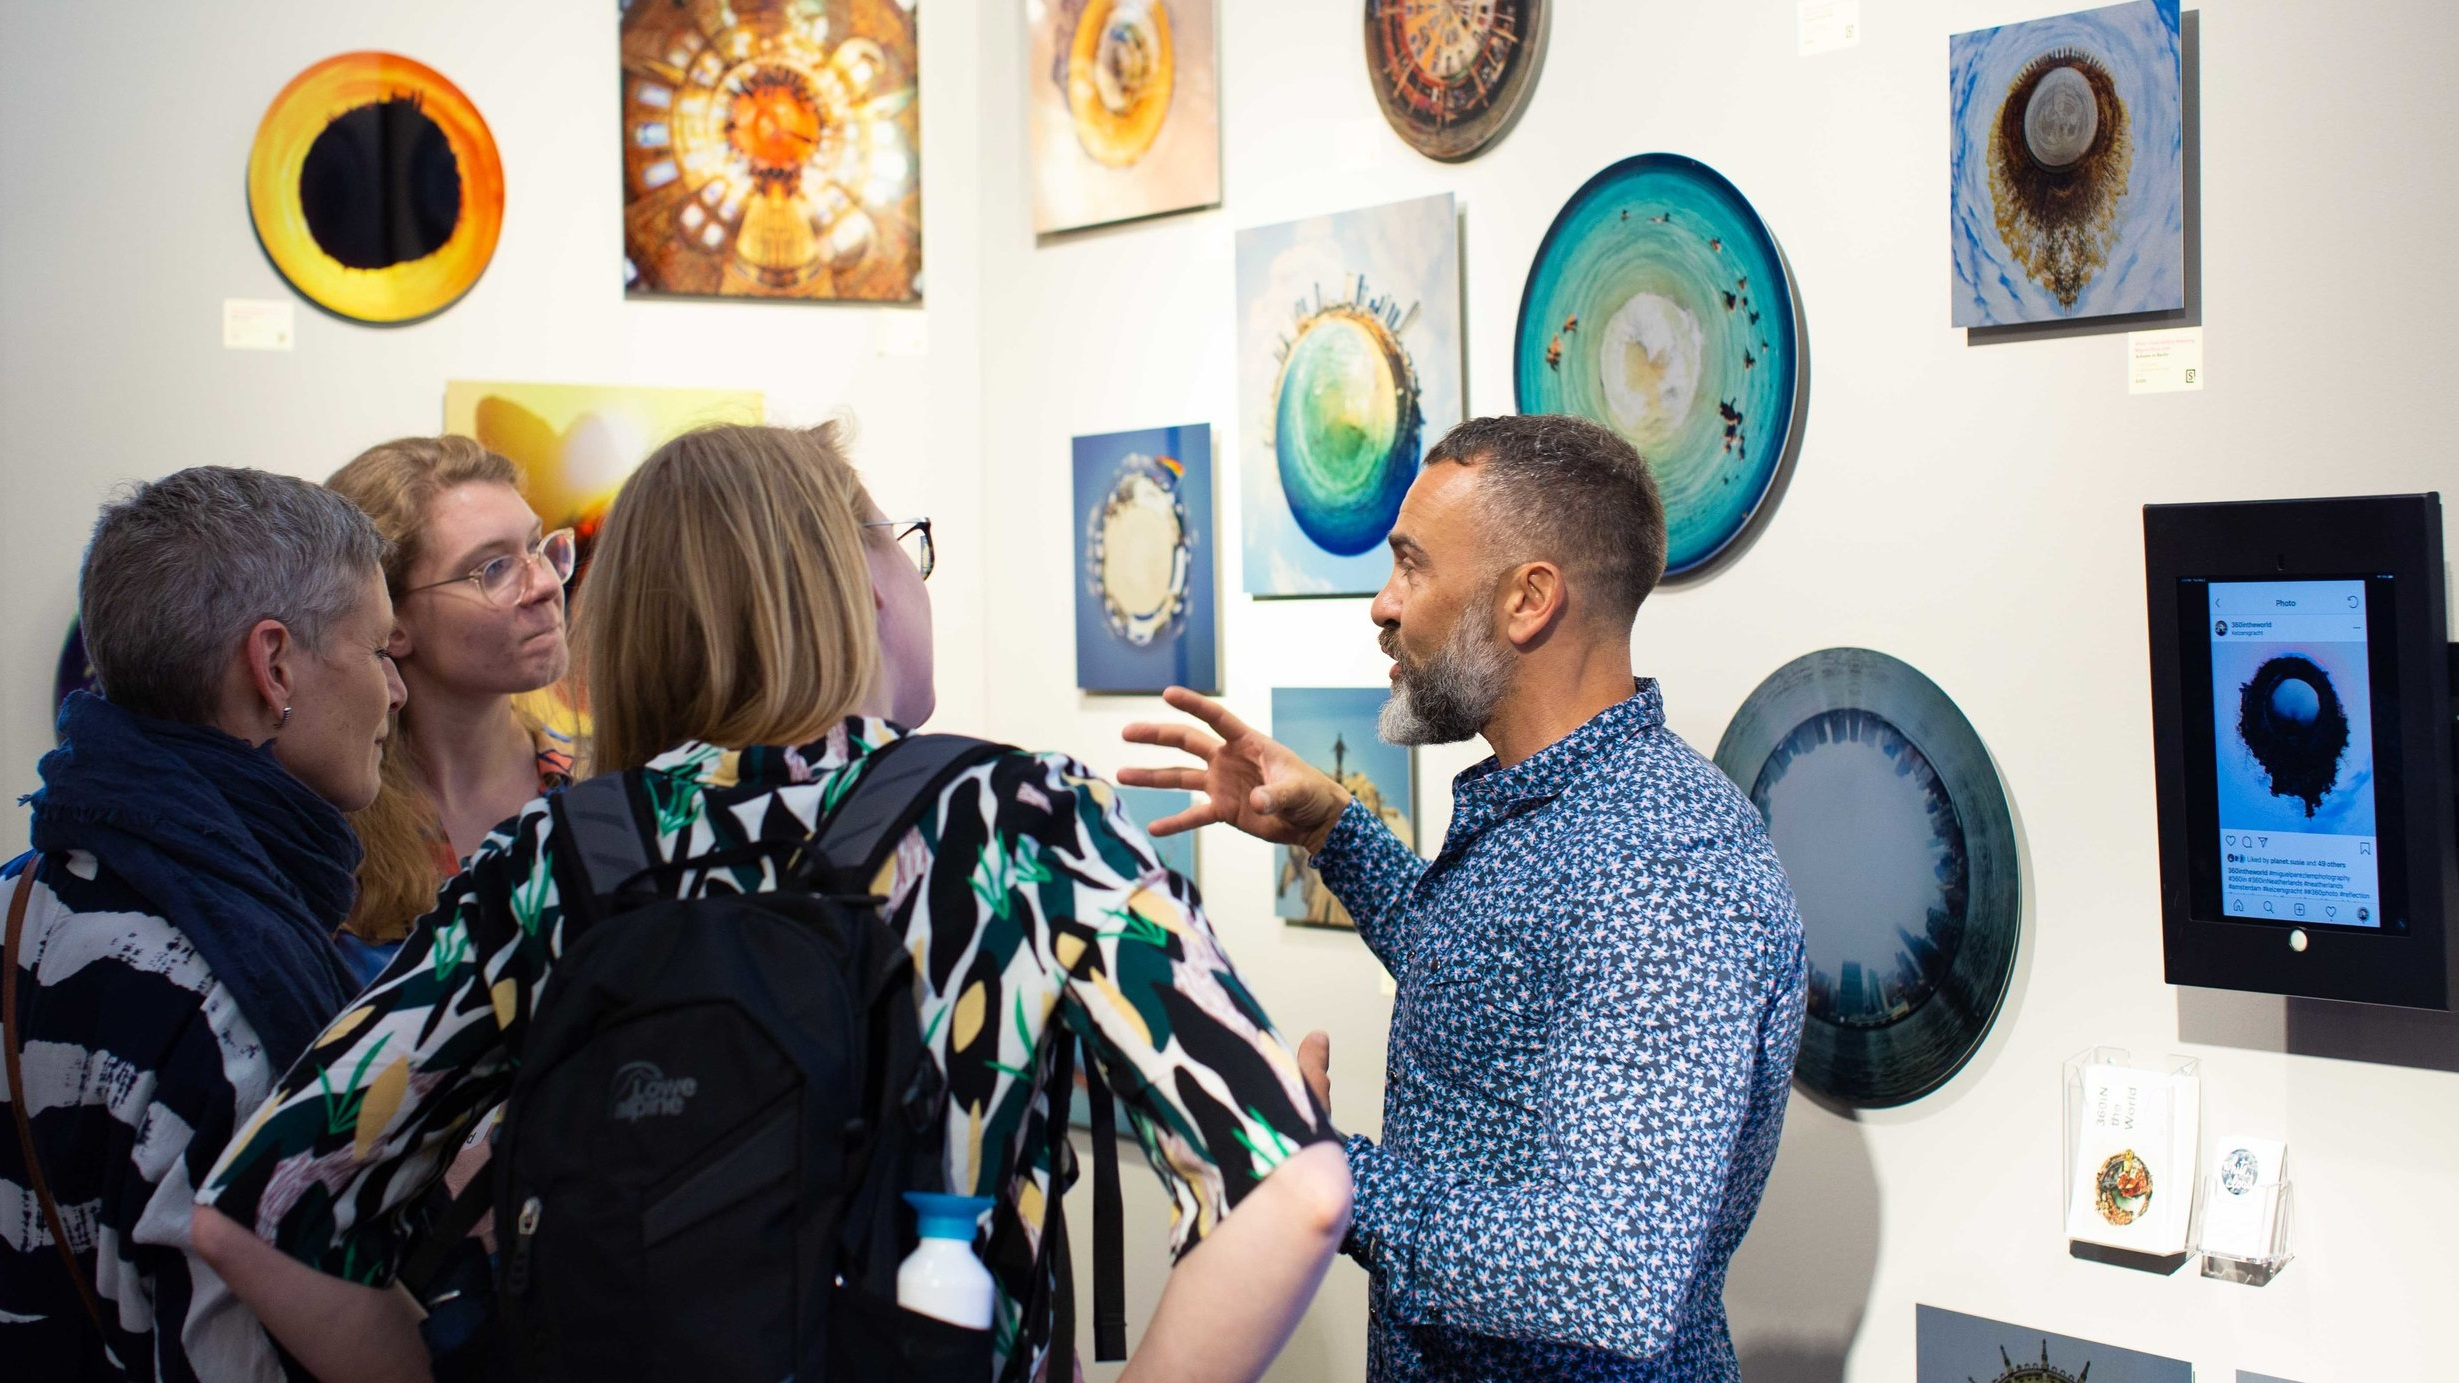 4.29 - 5.3, 2020 - Surrealist ideas and modern mythology provide the backdrop for a diverse fair comprised of artists at the cutting edge of new contemporary art.